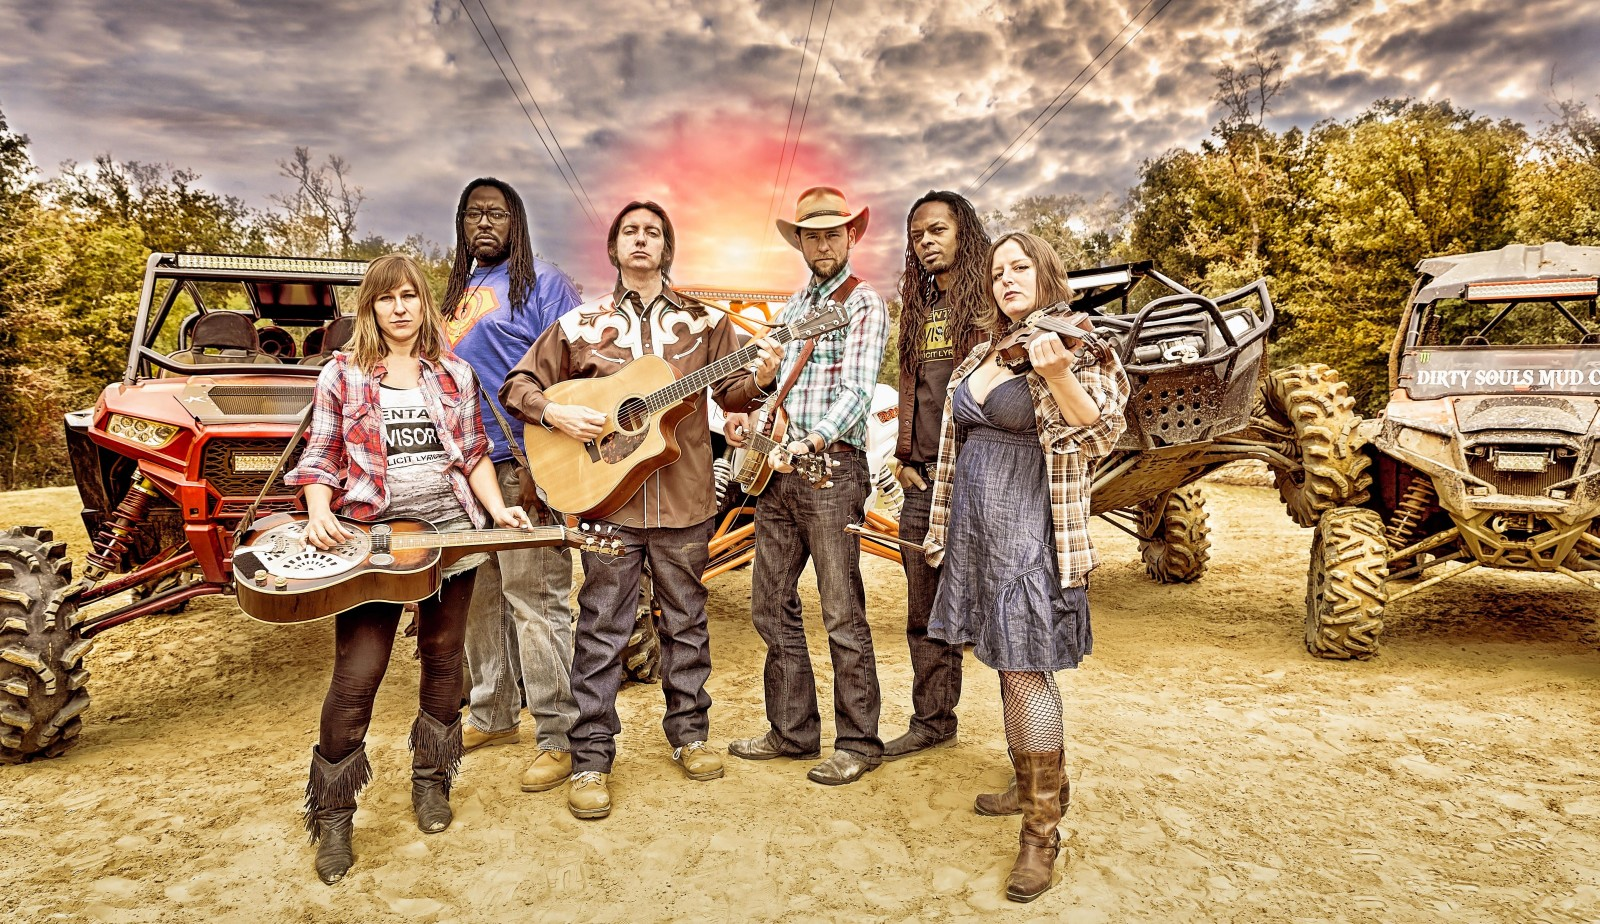 Gangstagrass performs at 9 p.m. Saturday at Buffalo Iron Works.